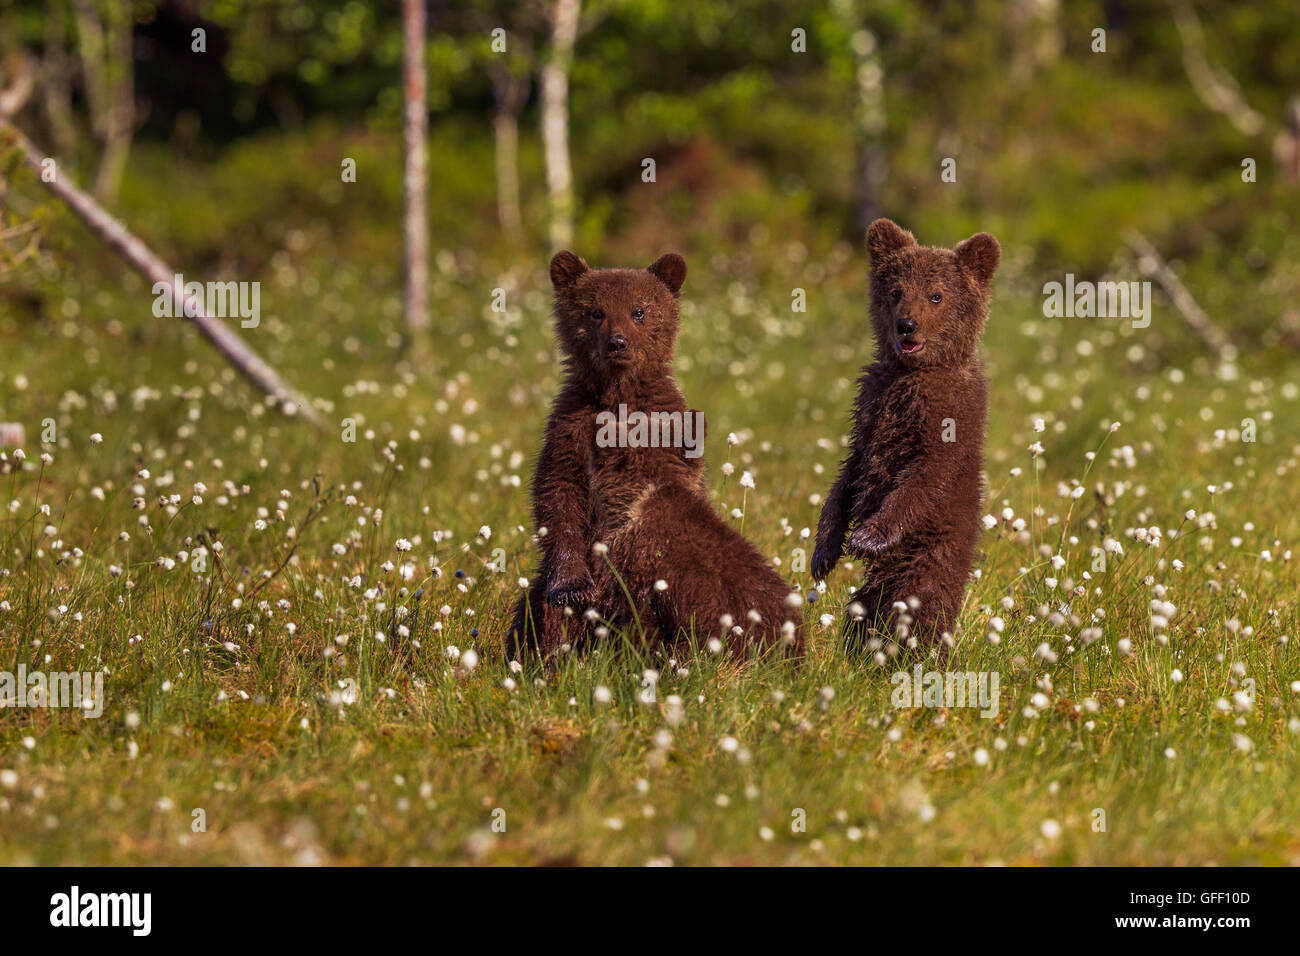 Three brown bear cubs in a field of cotton grass, Finland. - Stock Image